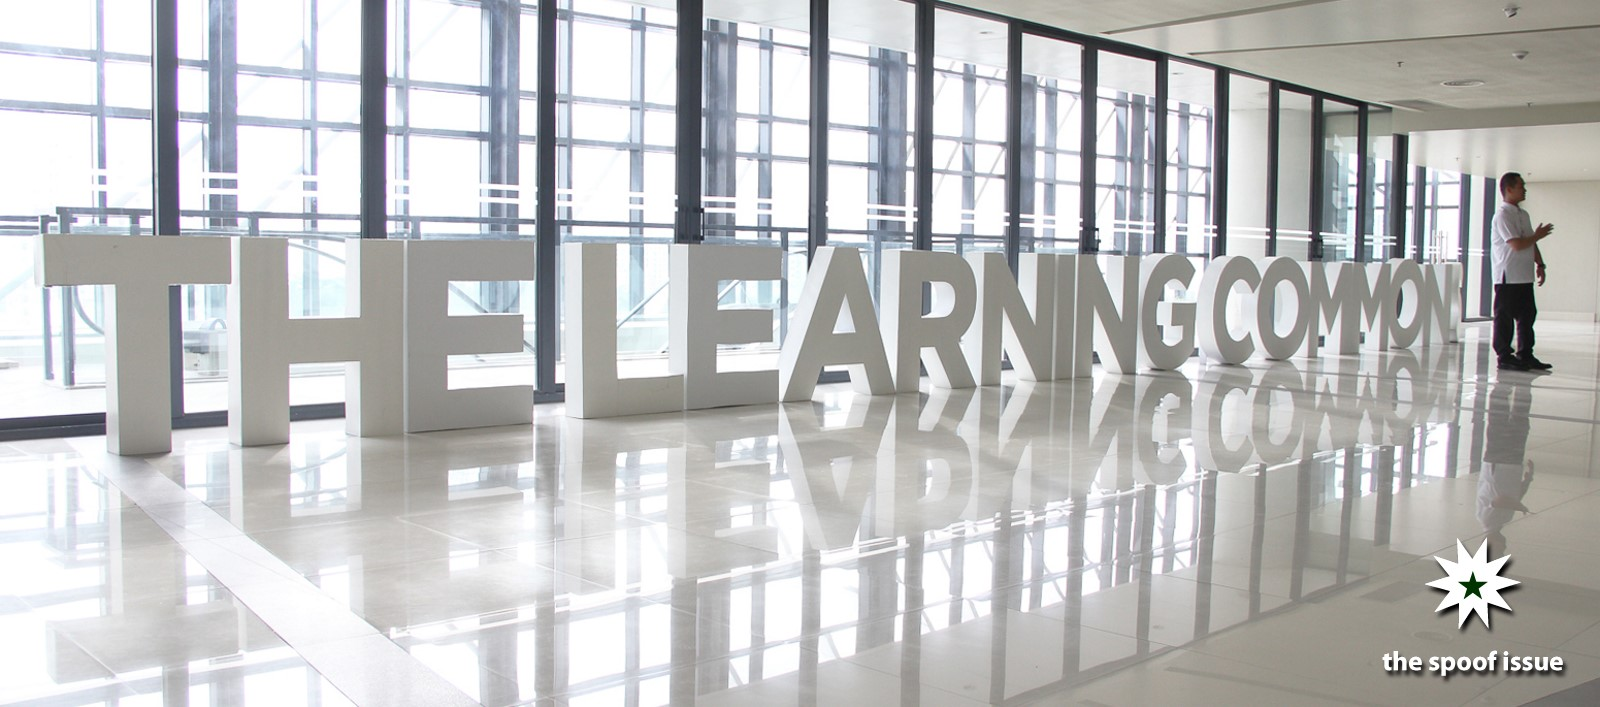 learning commons []